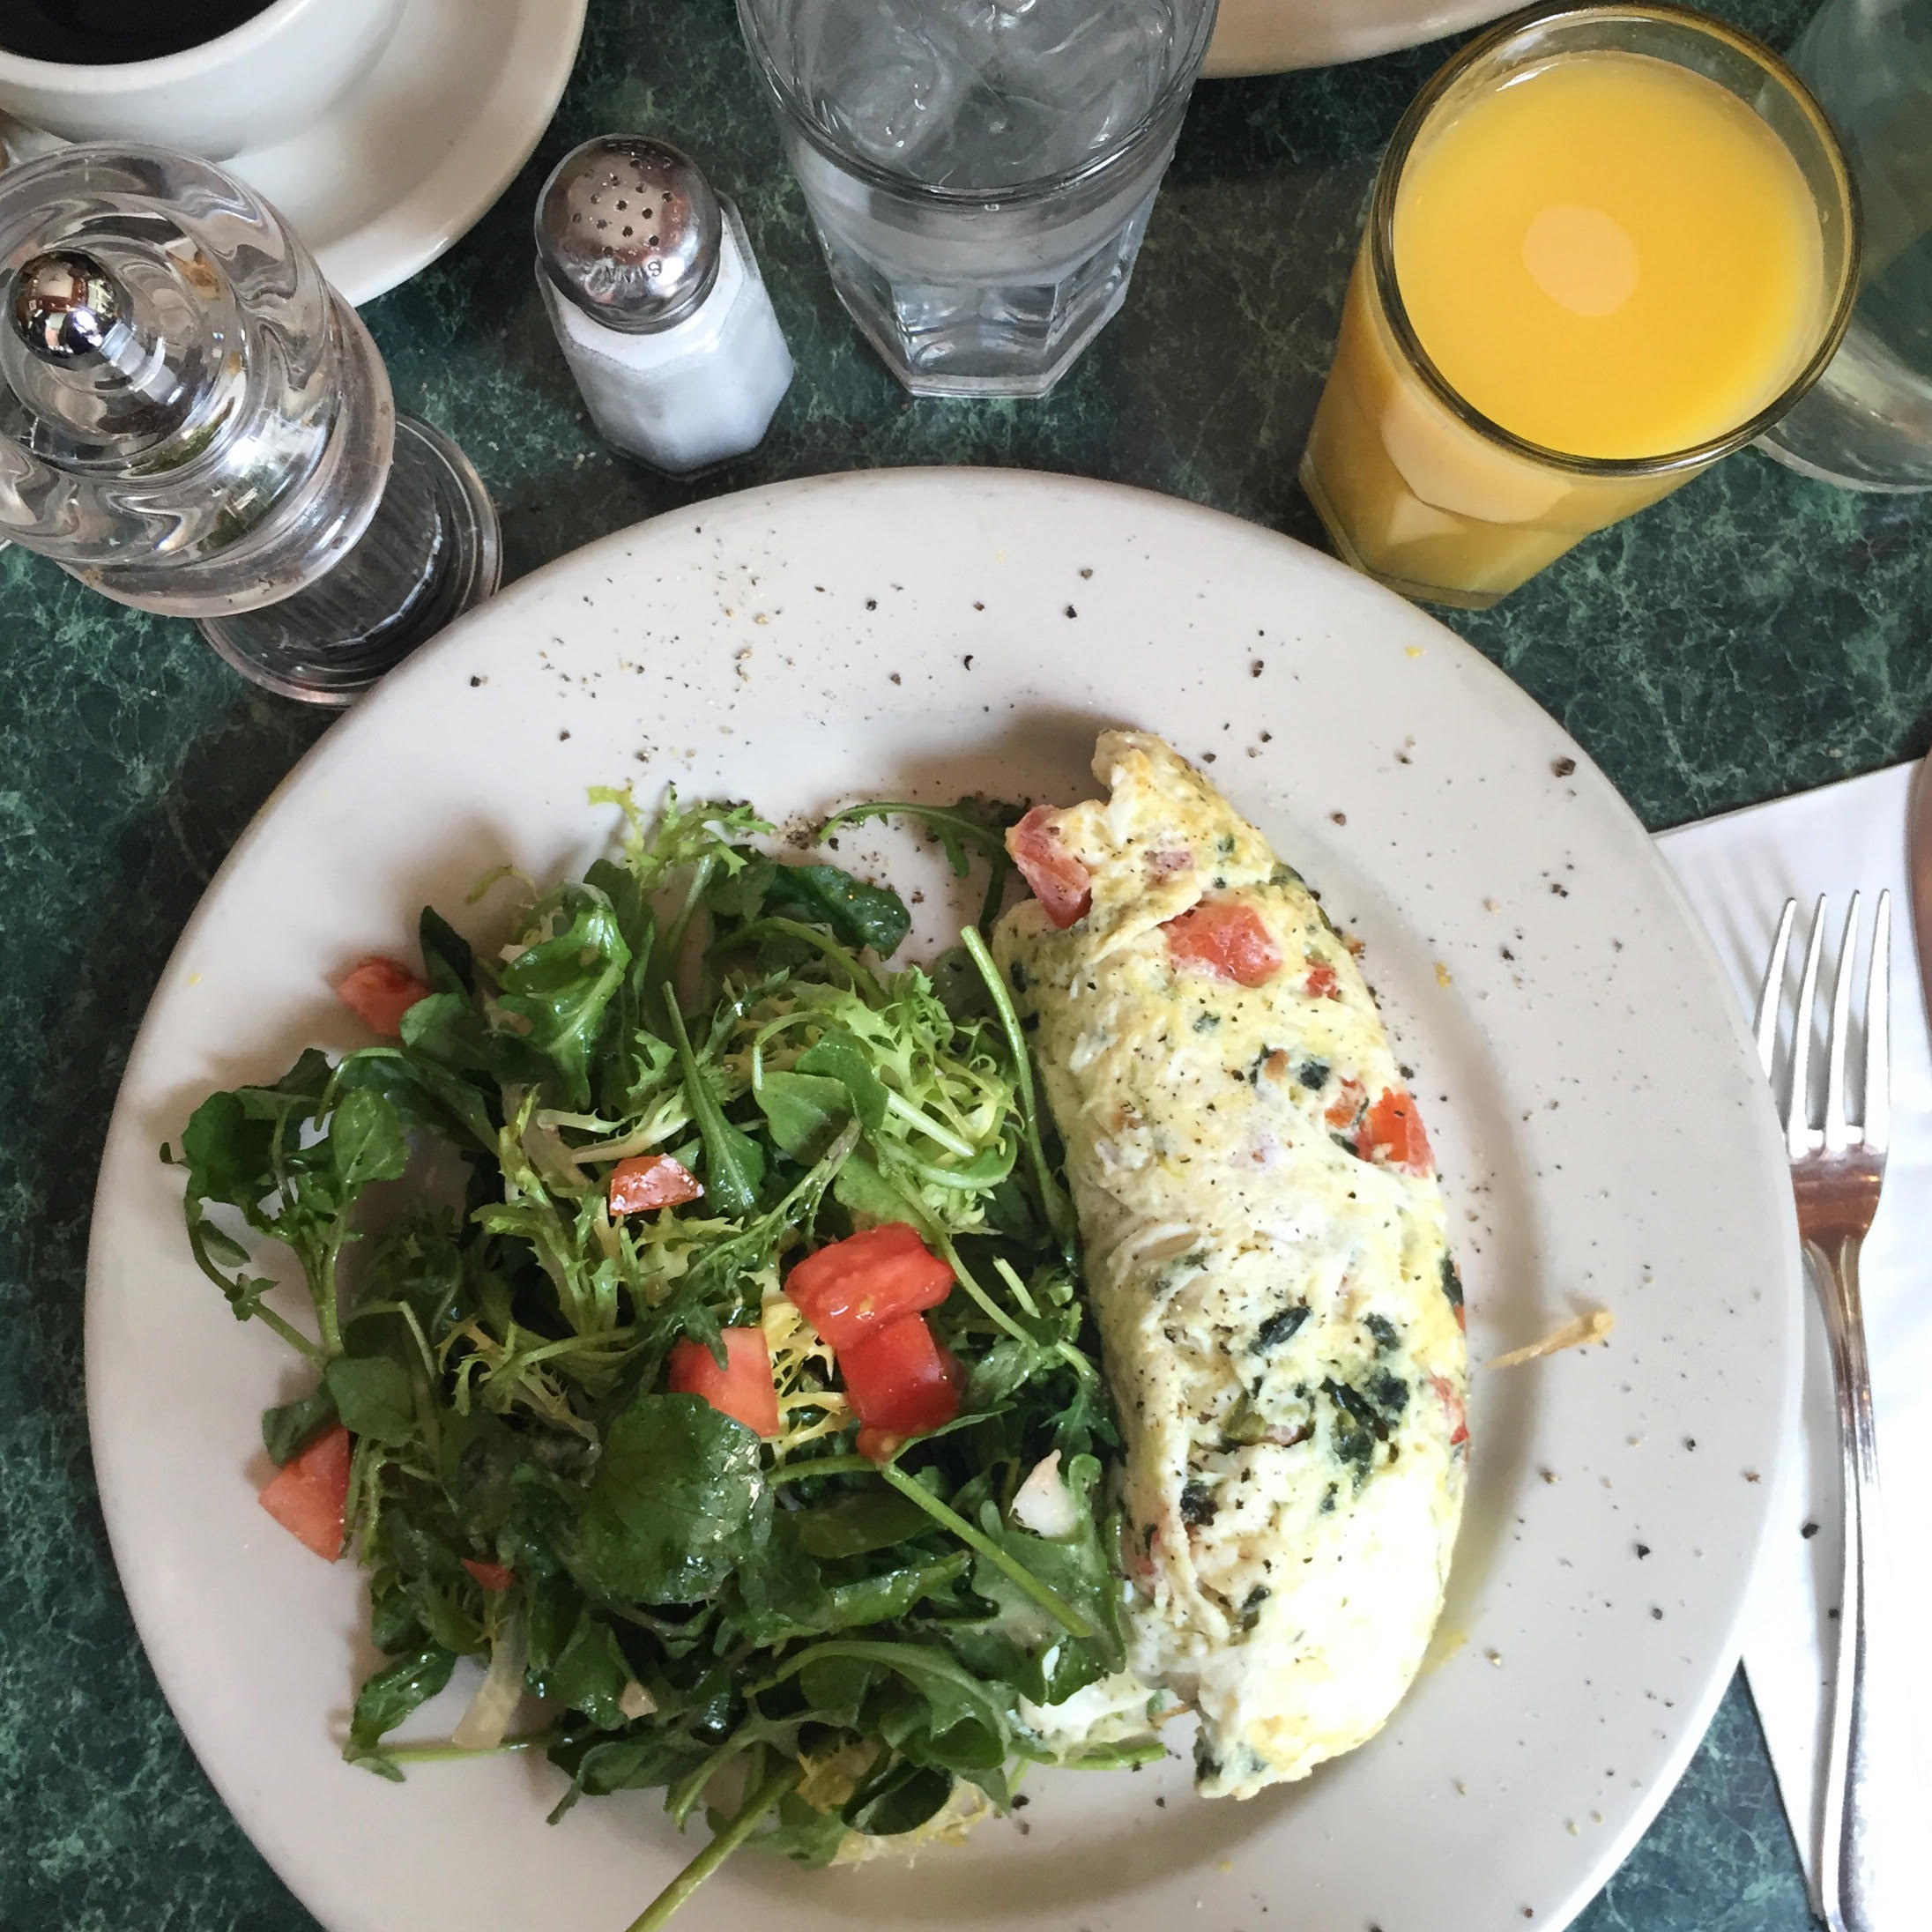 omelette with salad and orange juice